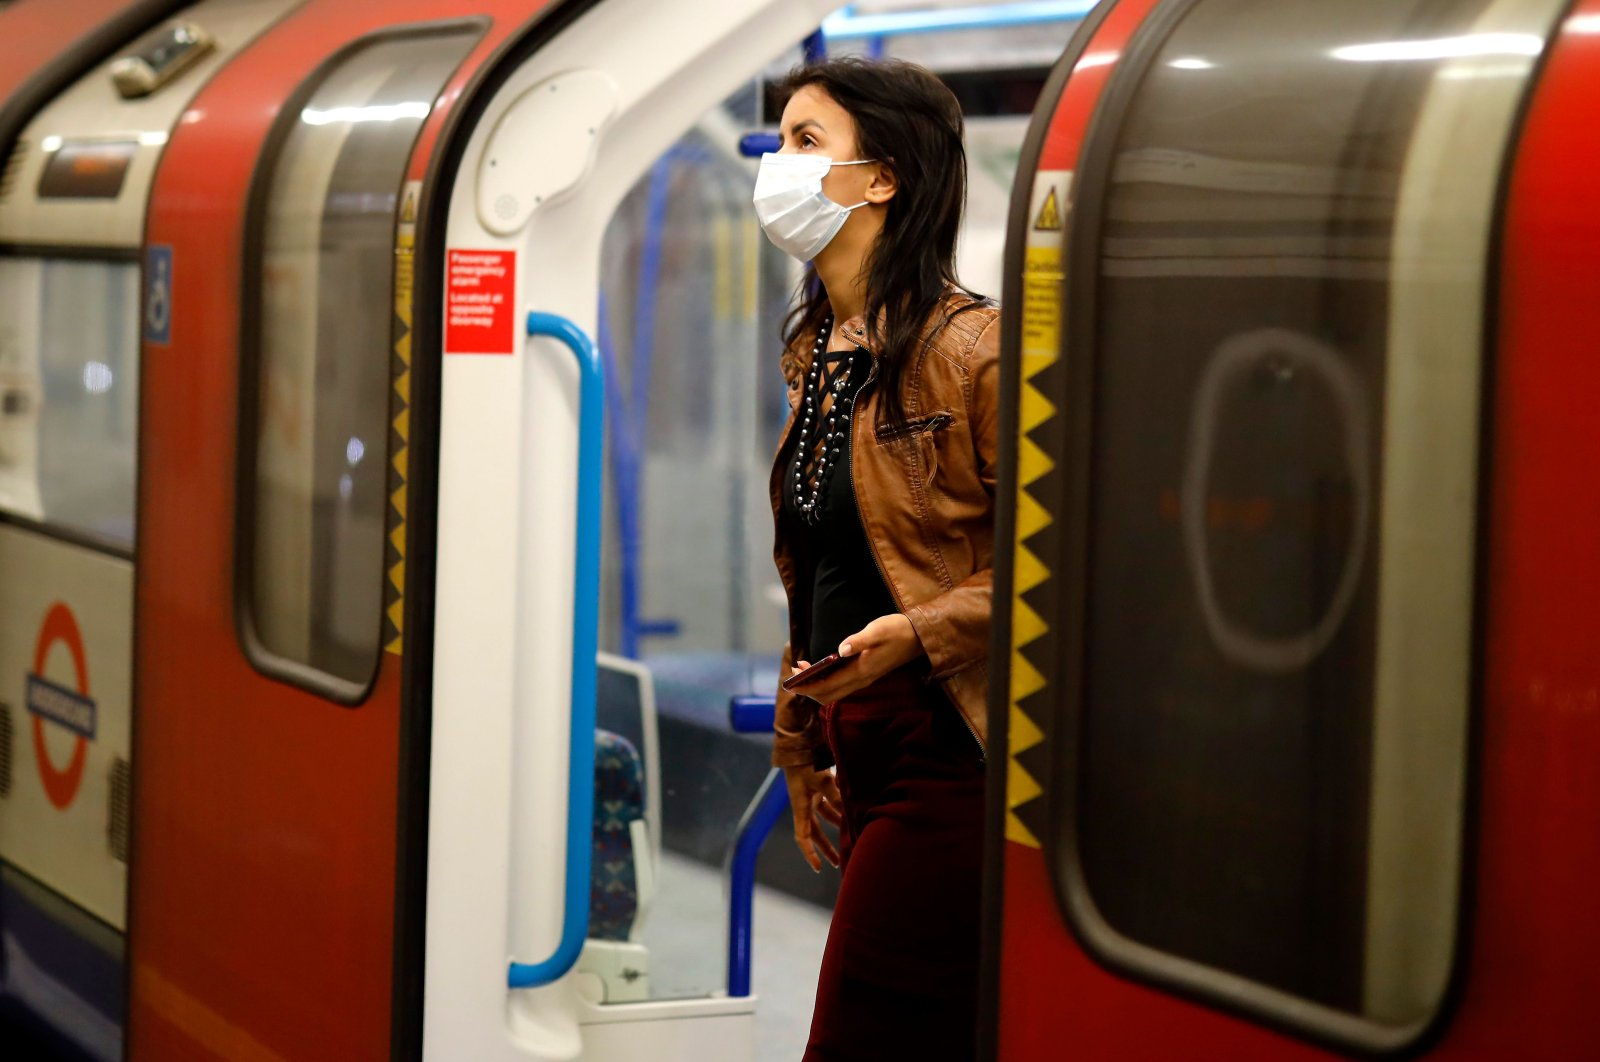 A commuter wears a facemask as she disembarks at a tube station in London on June  5, 2020. (AFP Photo)